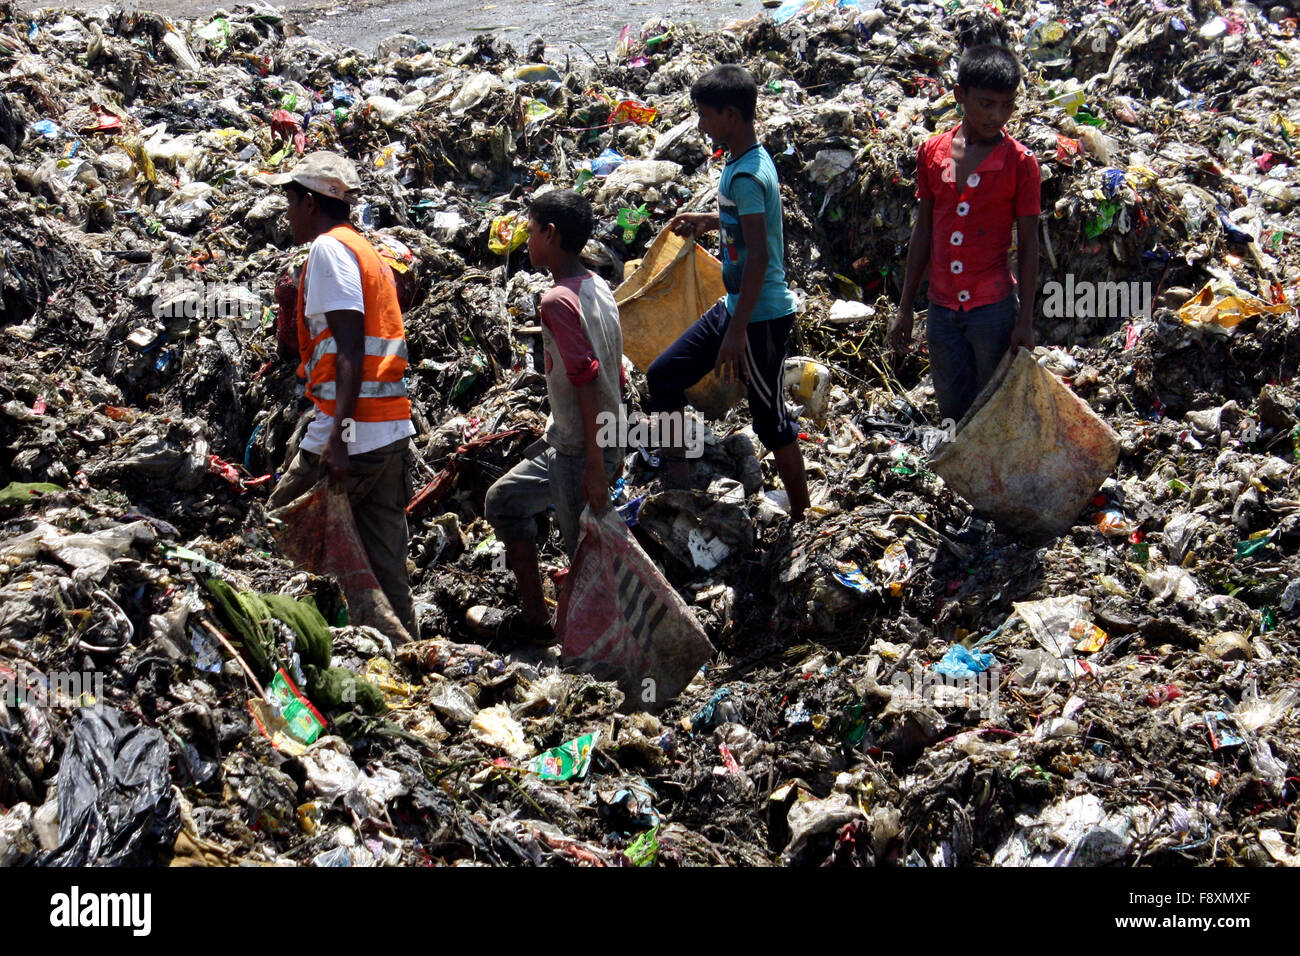 images of biodegradable and nonbiodegradable waste